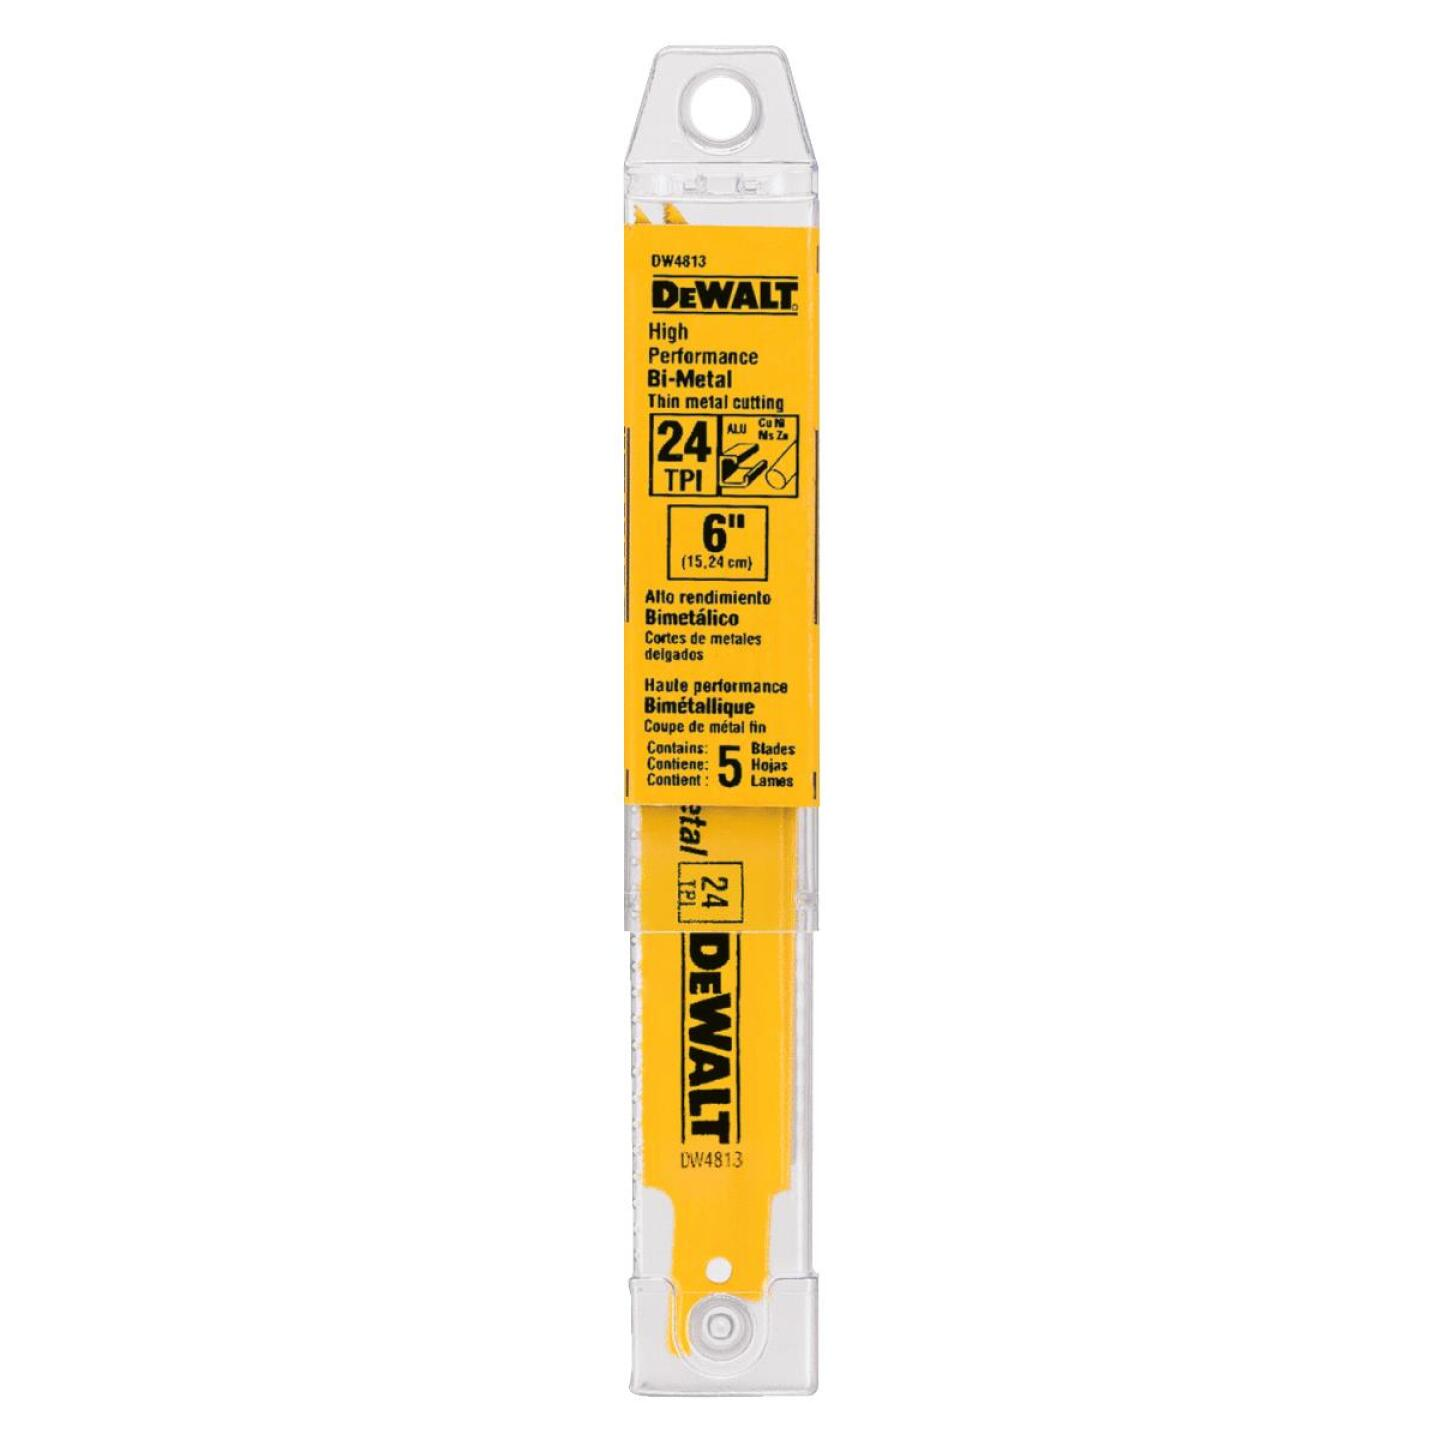 DeWalt 6 In. 24 TPI Thin Metal Reciprocating Saw Blade (5-Pack) Image 2